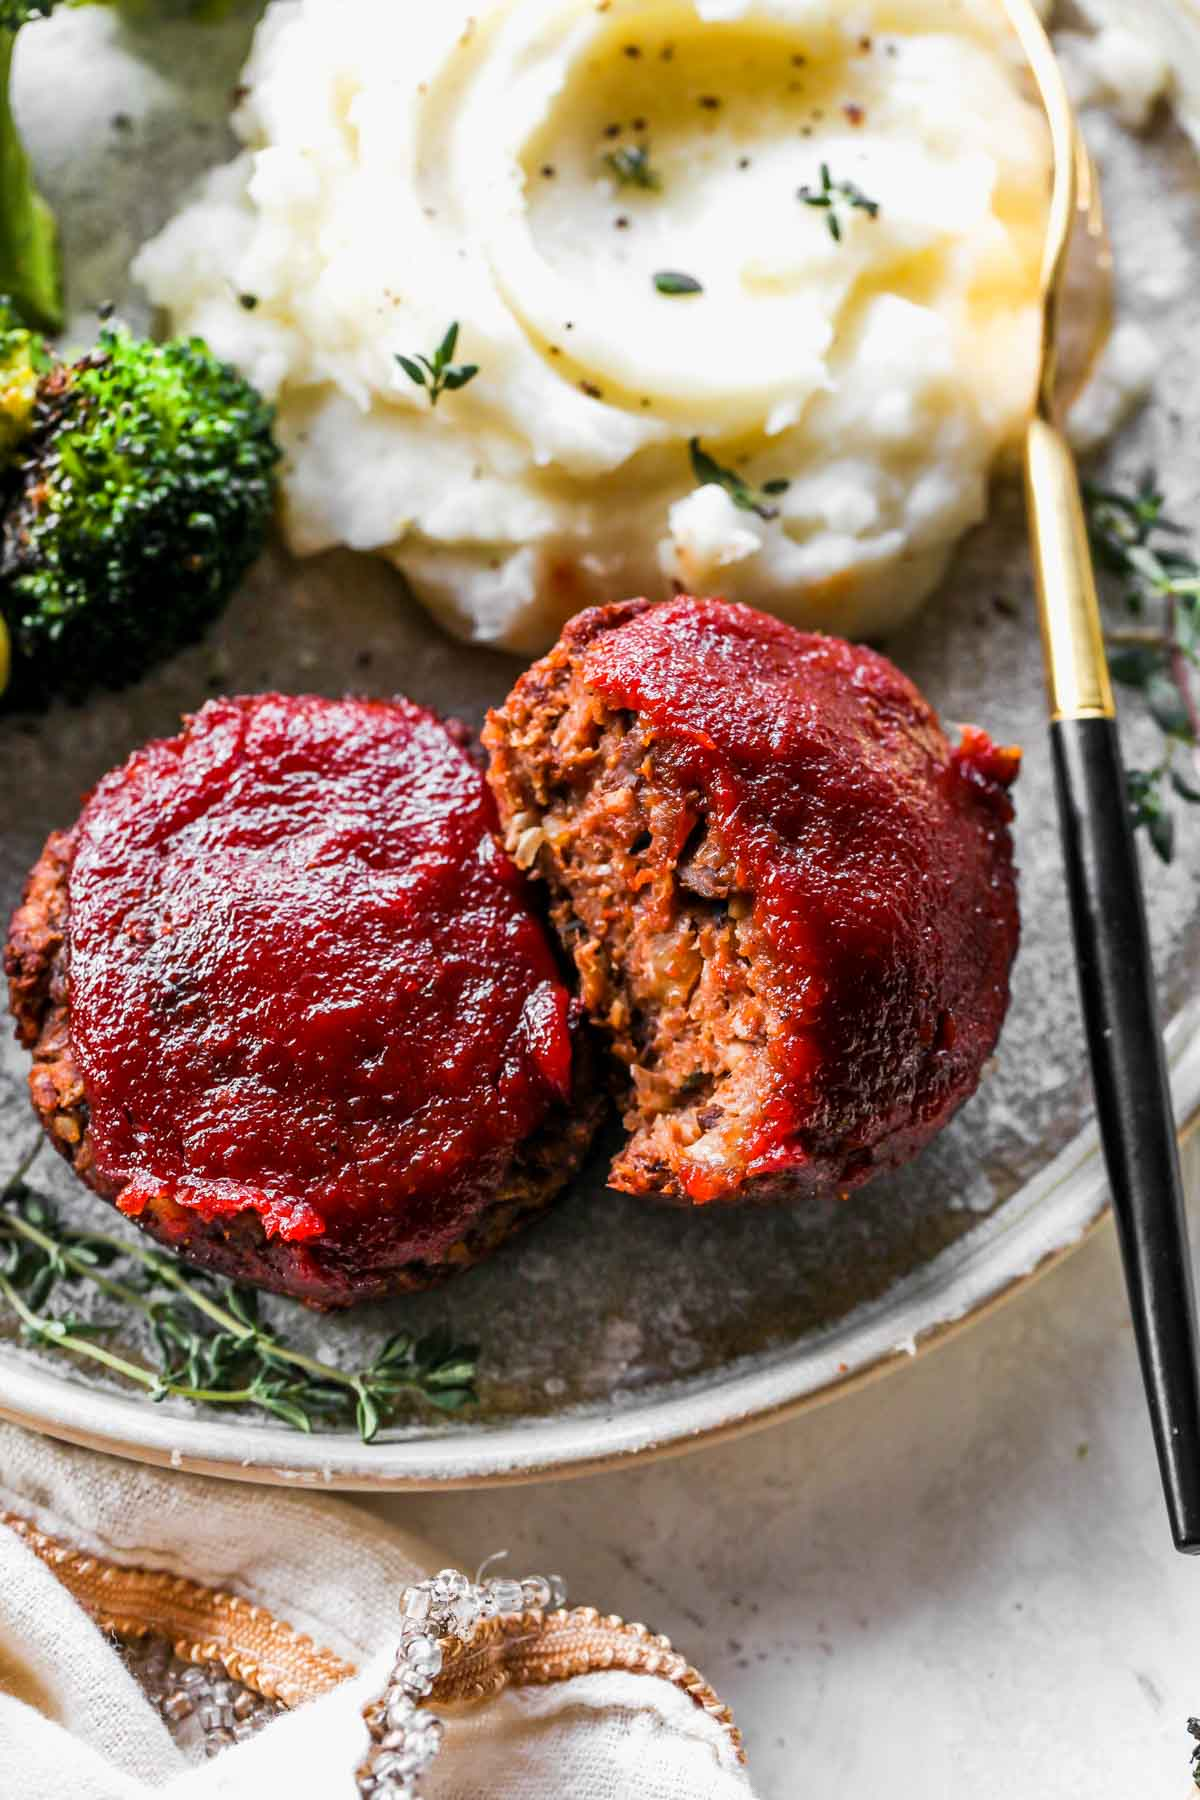 Vegetarian meatloaf mini being sliced into on a plate